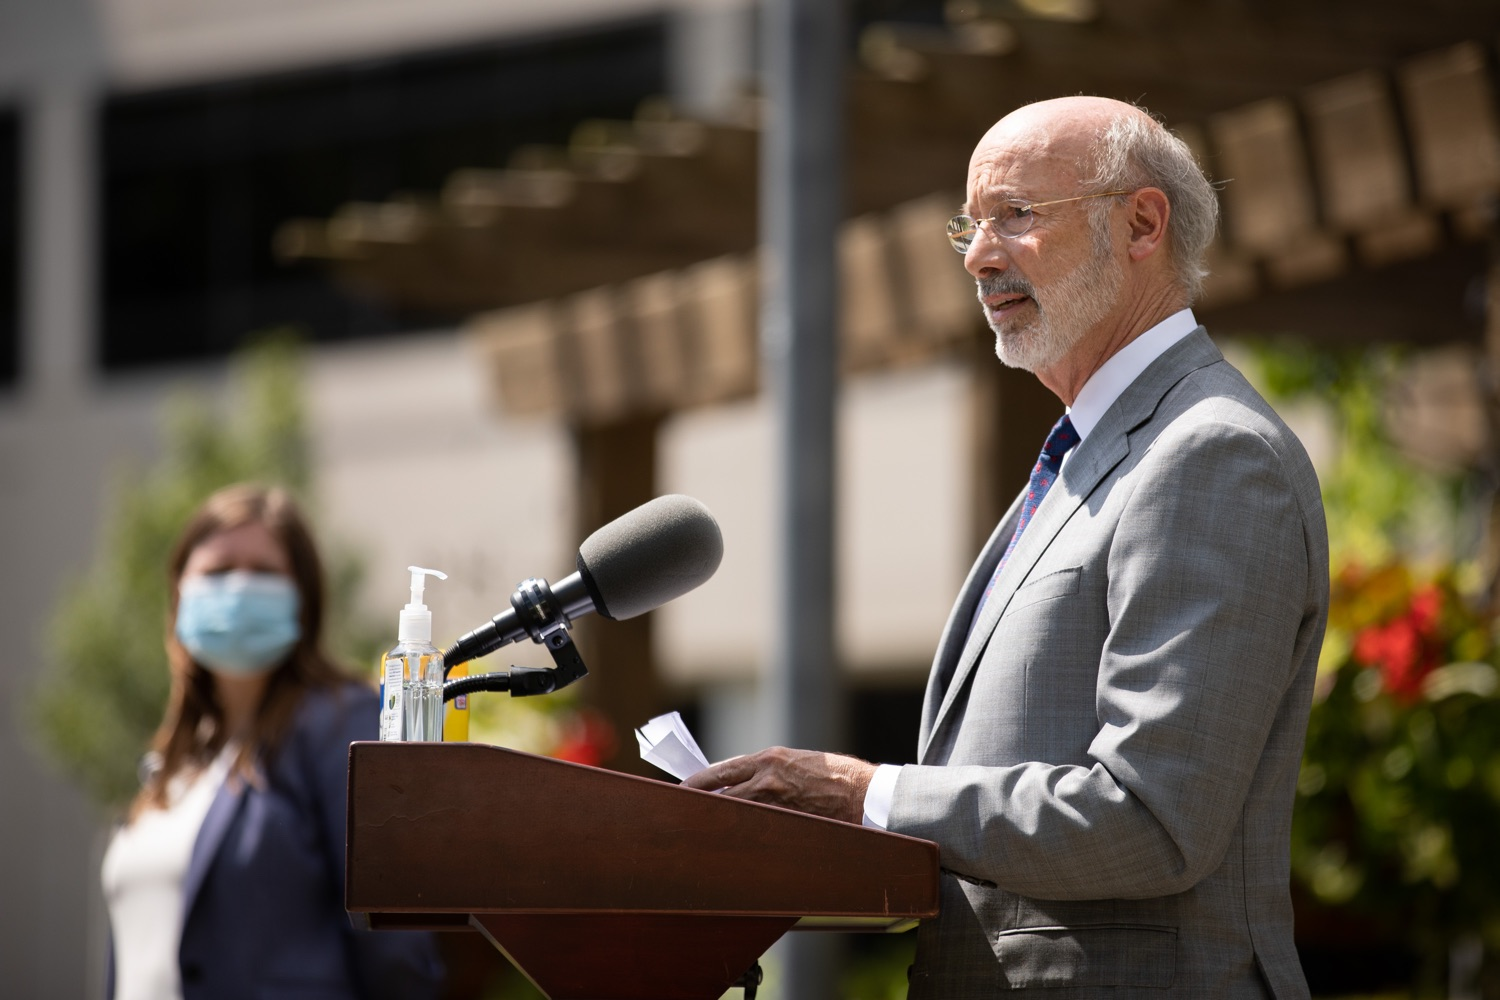 """<a href=""""https://filesource.wostreaming.net/commonwealthofpa/photo/18093_gov-healthcare_workers_dz_16.jpg"""" target=""""_blank"""">⇣Download Photo<br></a>Pennsylvania Governor Tom Wolf speaking during his visit to Milton S. Hershey Medical Center. As the commonwealth continues its measured, phased reopening and COVID-19 case counts continue to decline, Governor Tom Wolf visited Penn State Milton S. Hershey Medical Center today to thank staff and learn more about how the facility is handling the pandemic and preparing for a possible resurgence in the fall.  Harrisburg, PA  June 24, 2020"""